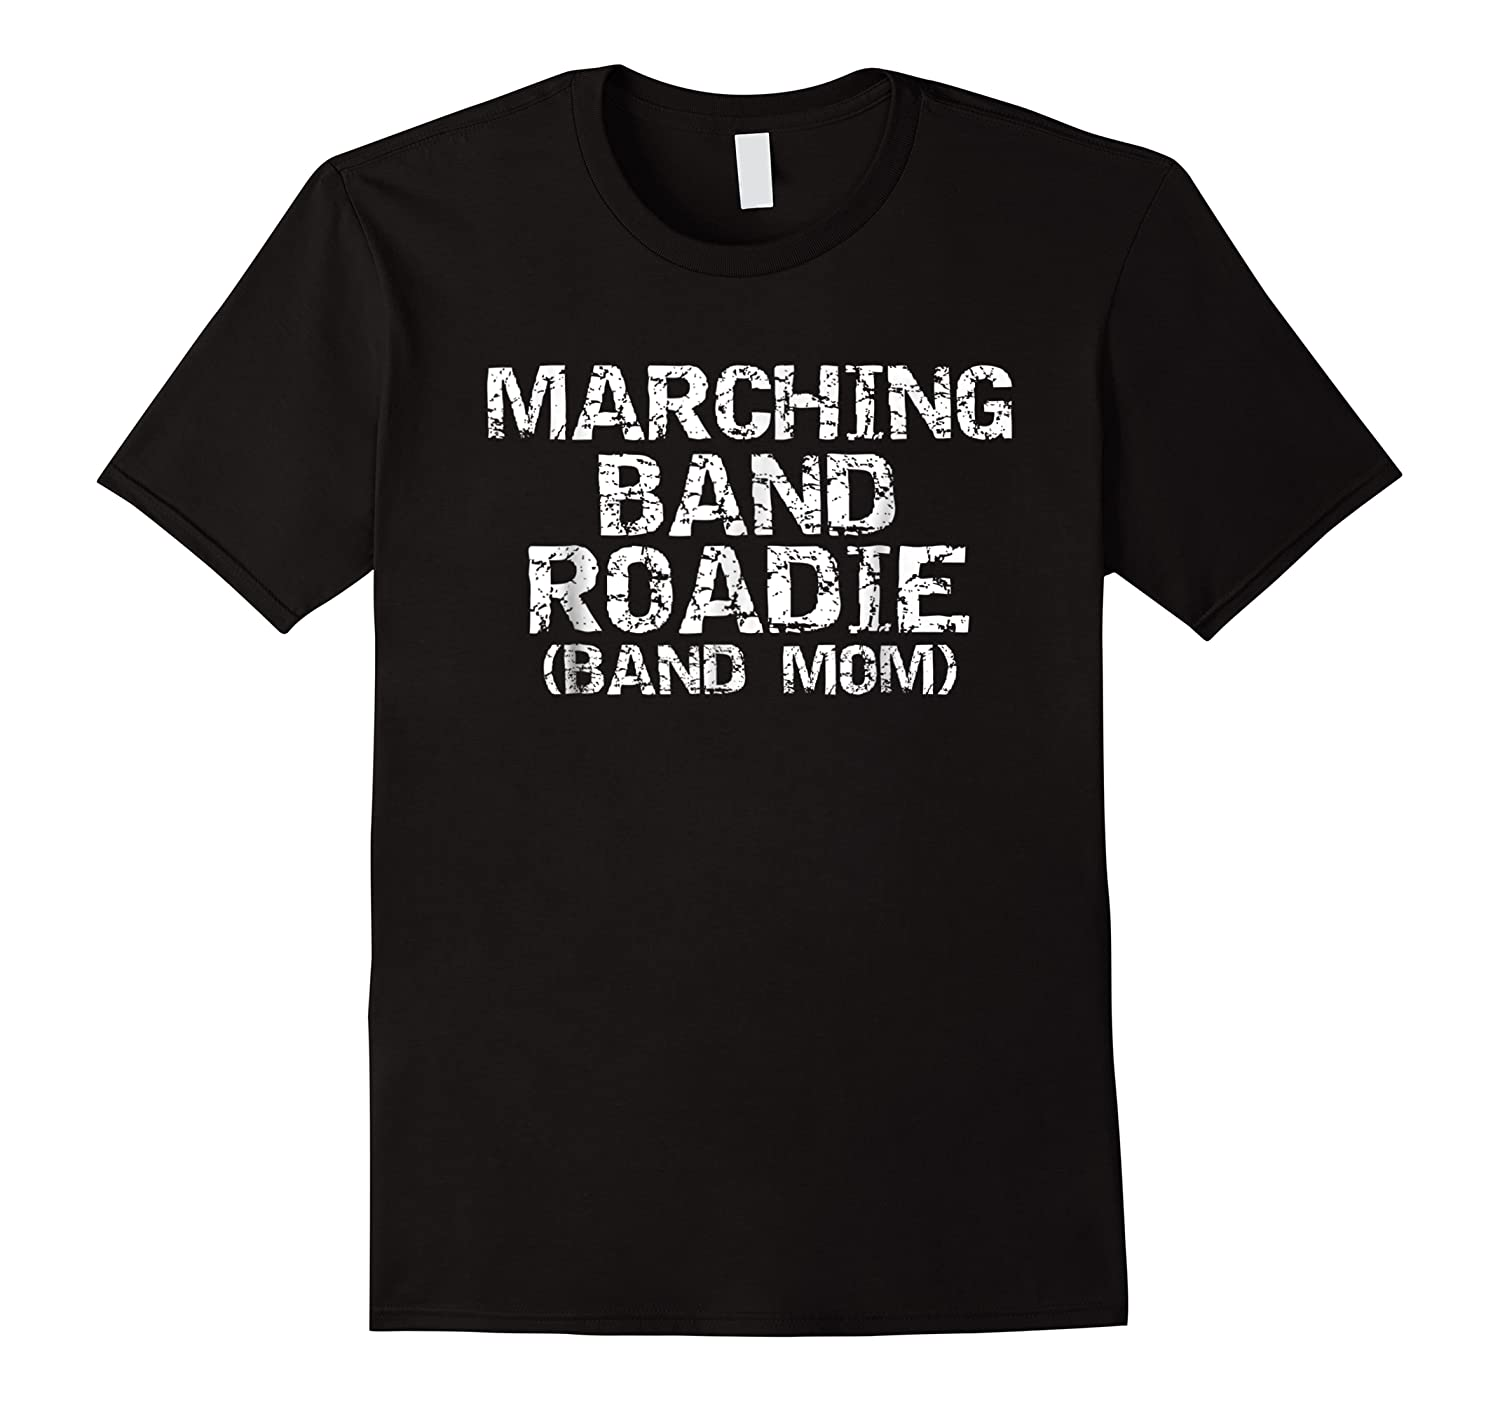 Marching Band Roadie Band Mom Funny Mother Shirts